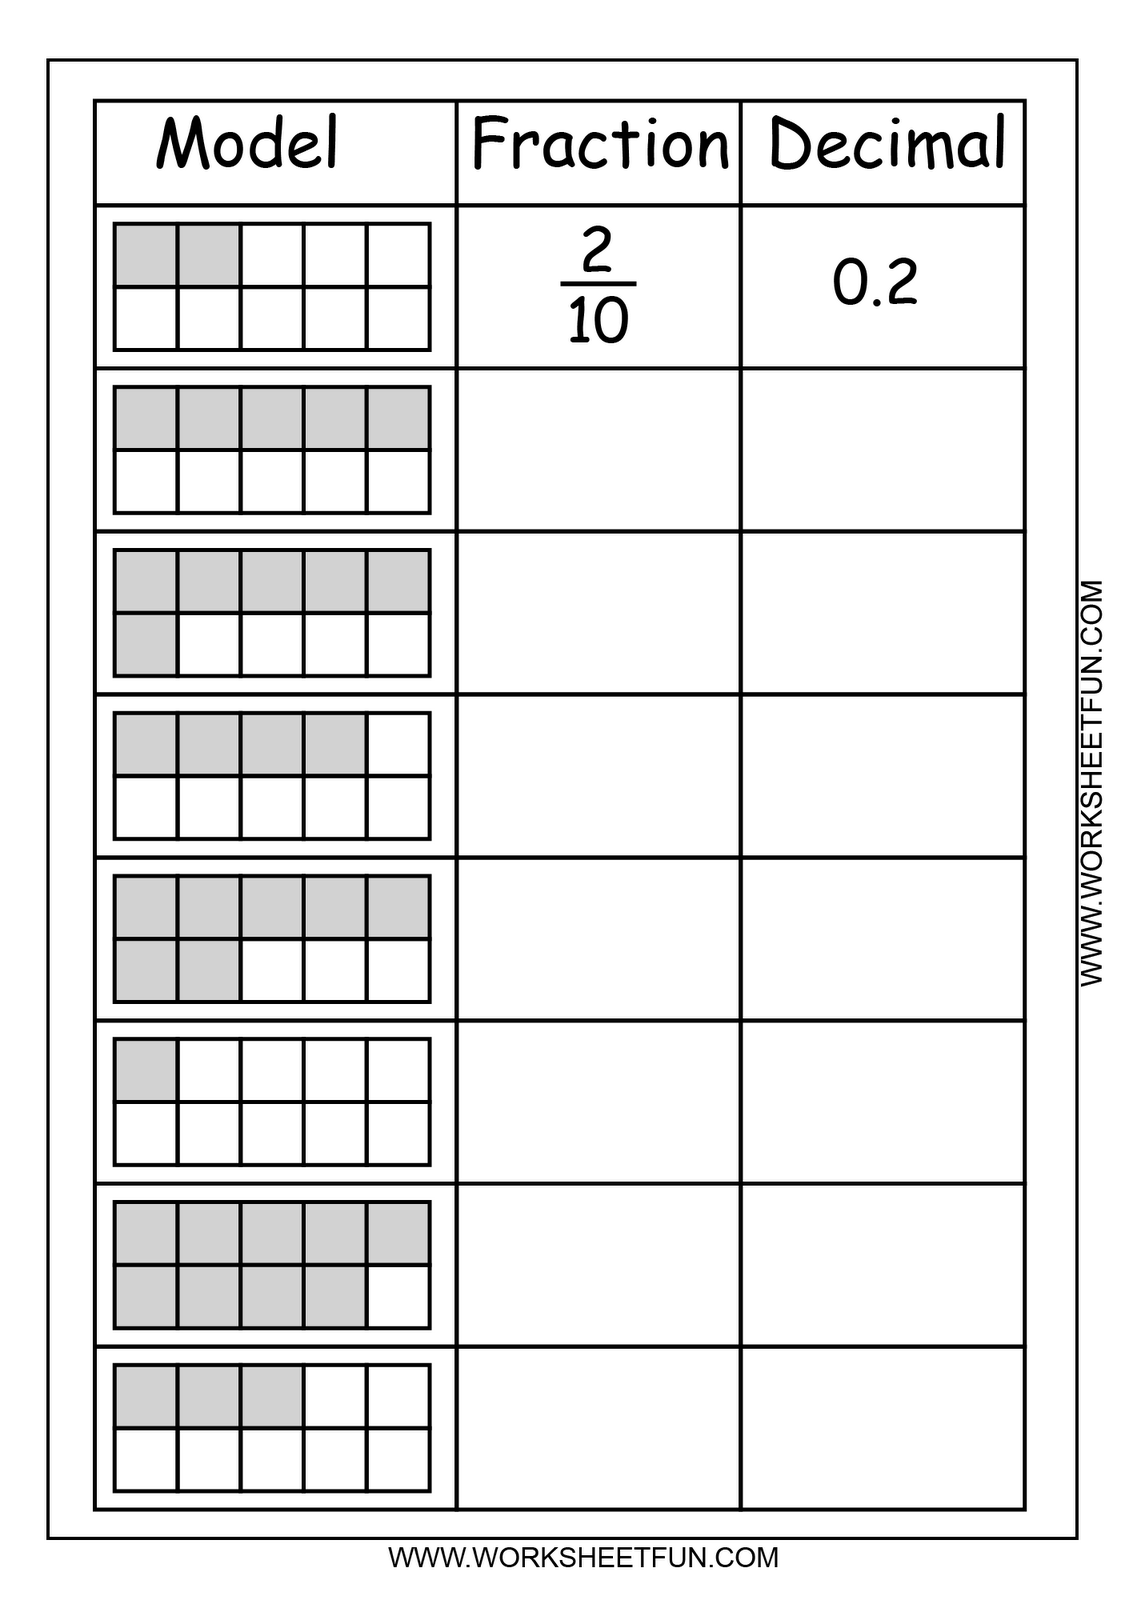 hight resolution of Converting Fractions Into Decimals Worksheet 4th Grade   Printable  Worksheets and Activities for Teachers